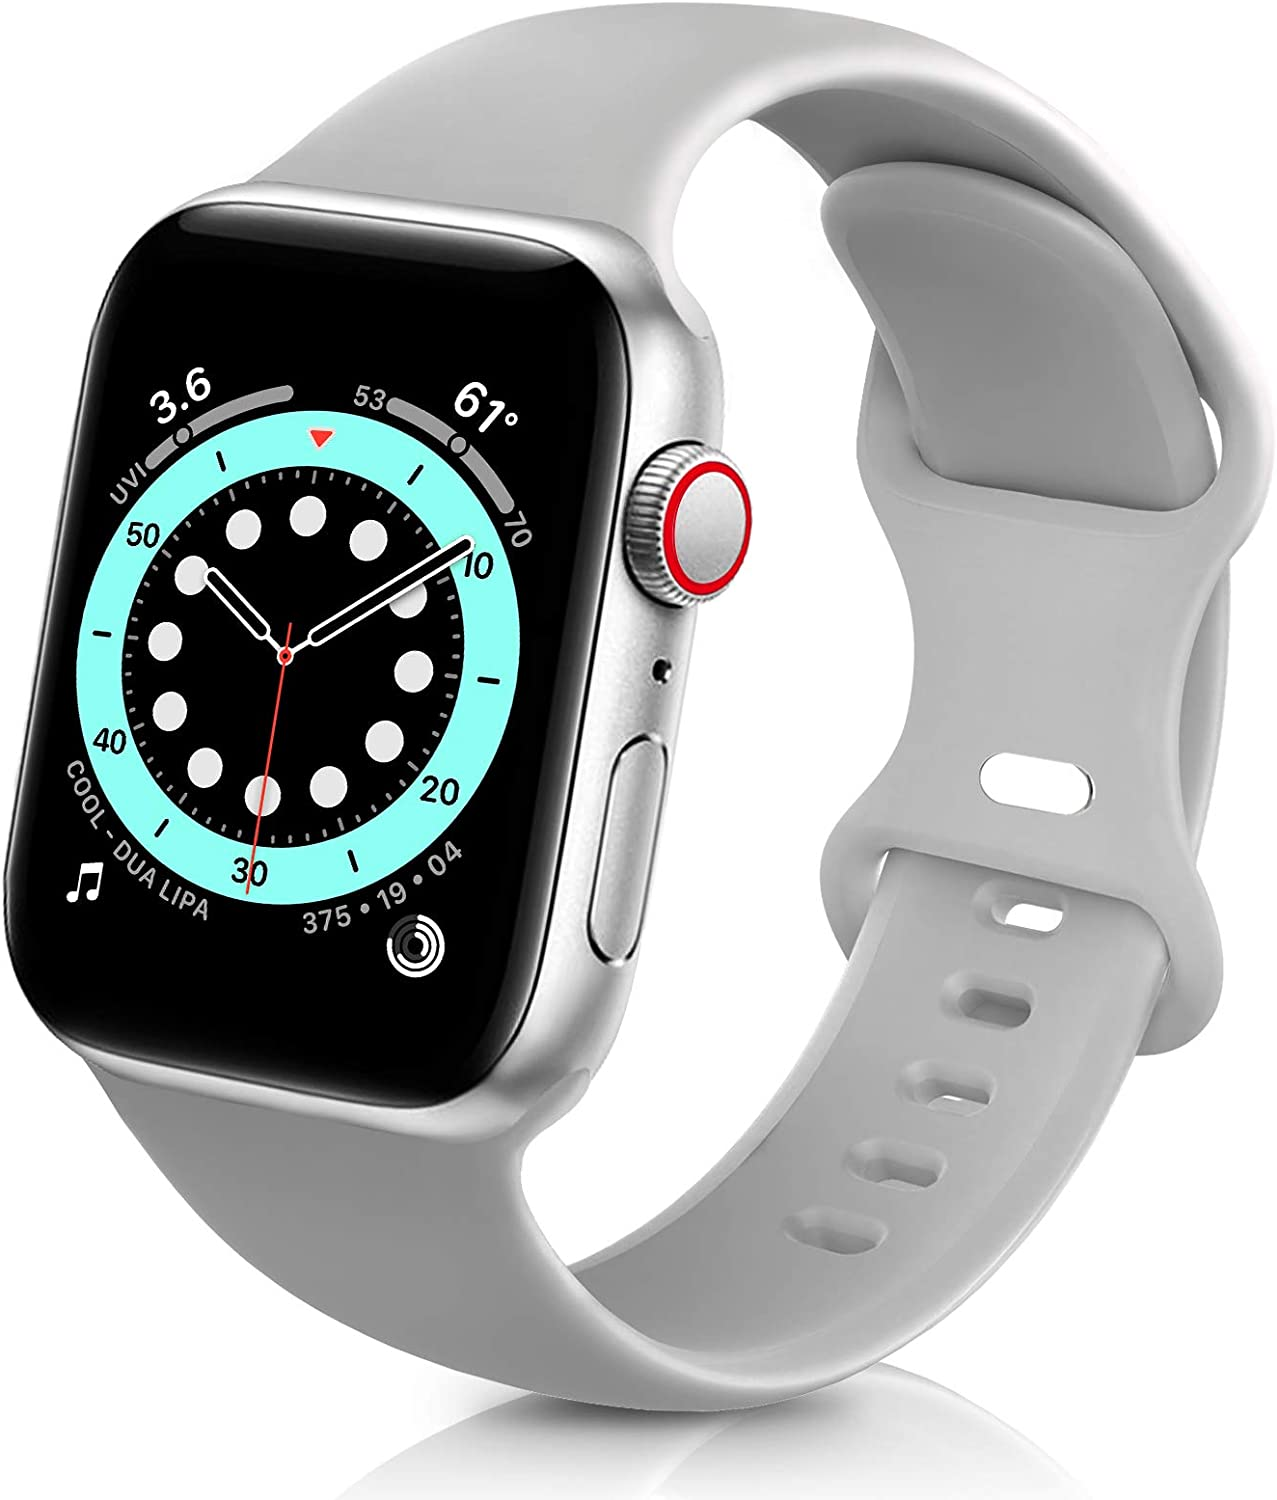 ZALAVER Bands Compatible with Apple Watch Band 38mm 40mm 42mm 44mm, Soft Silicone Sport Replacement Band Compatible with iWatch Series 6 5 4 3 2 1 Women Men Gray 38mm/40mm S/M